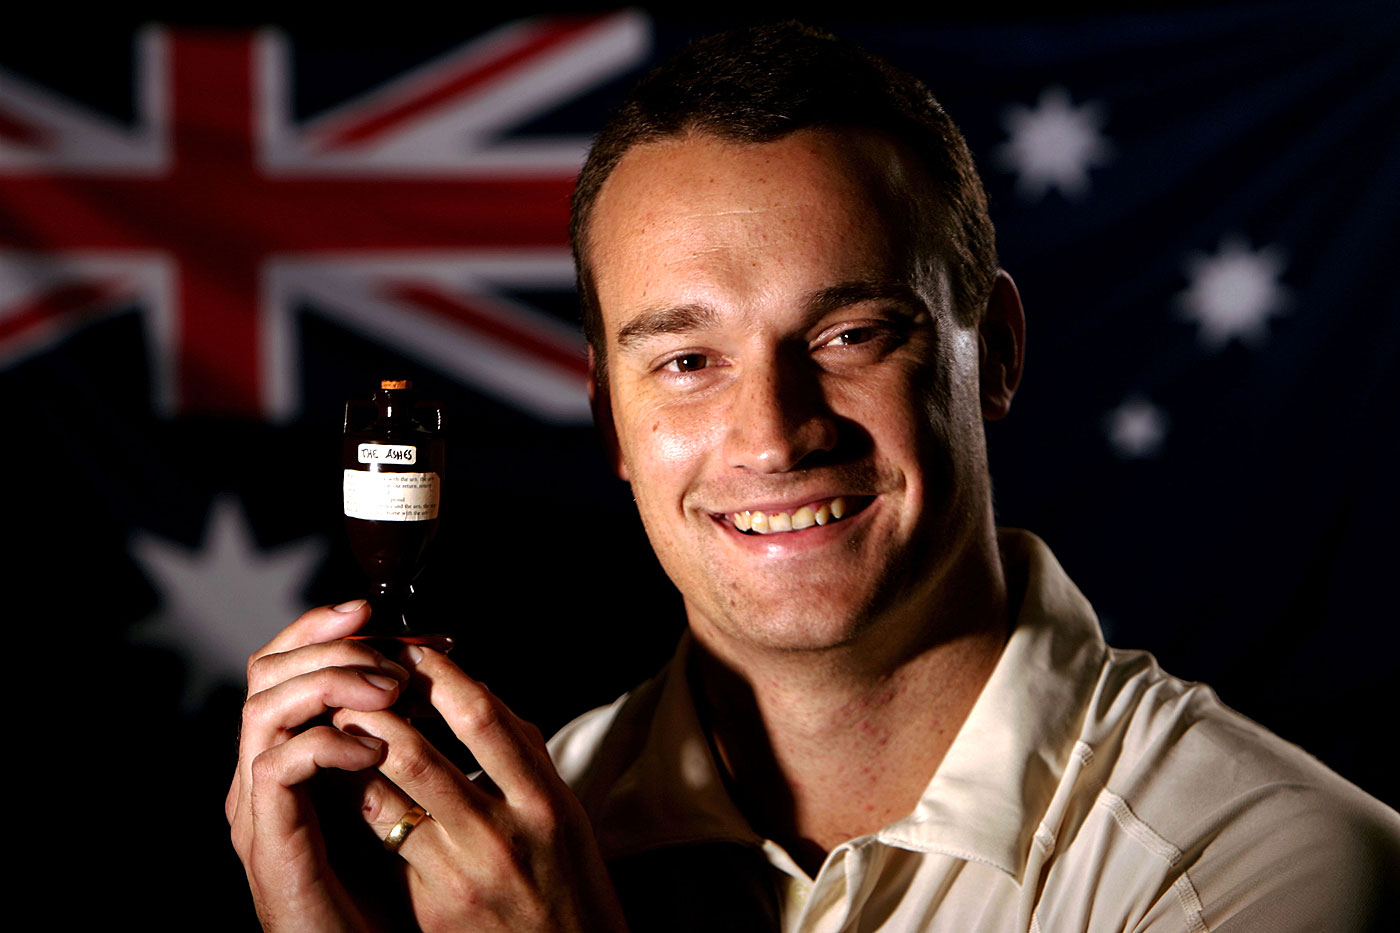 A wicket here, a wicket there: Stuart Clark's Ashes of 2006-07 was unforgettable